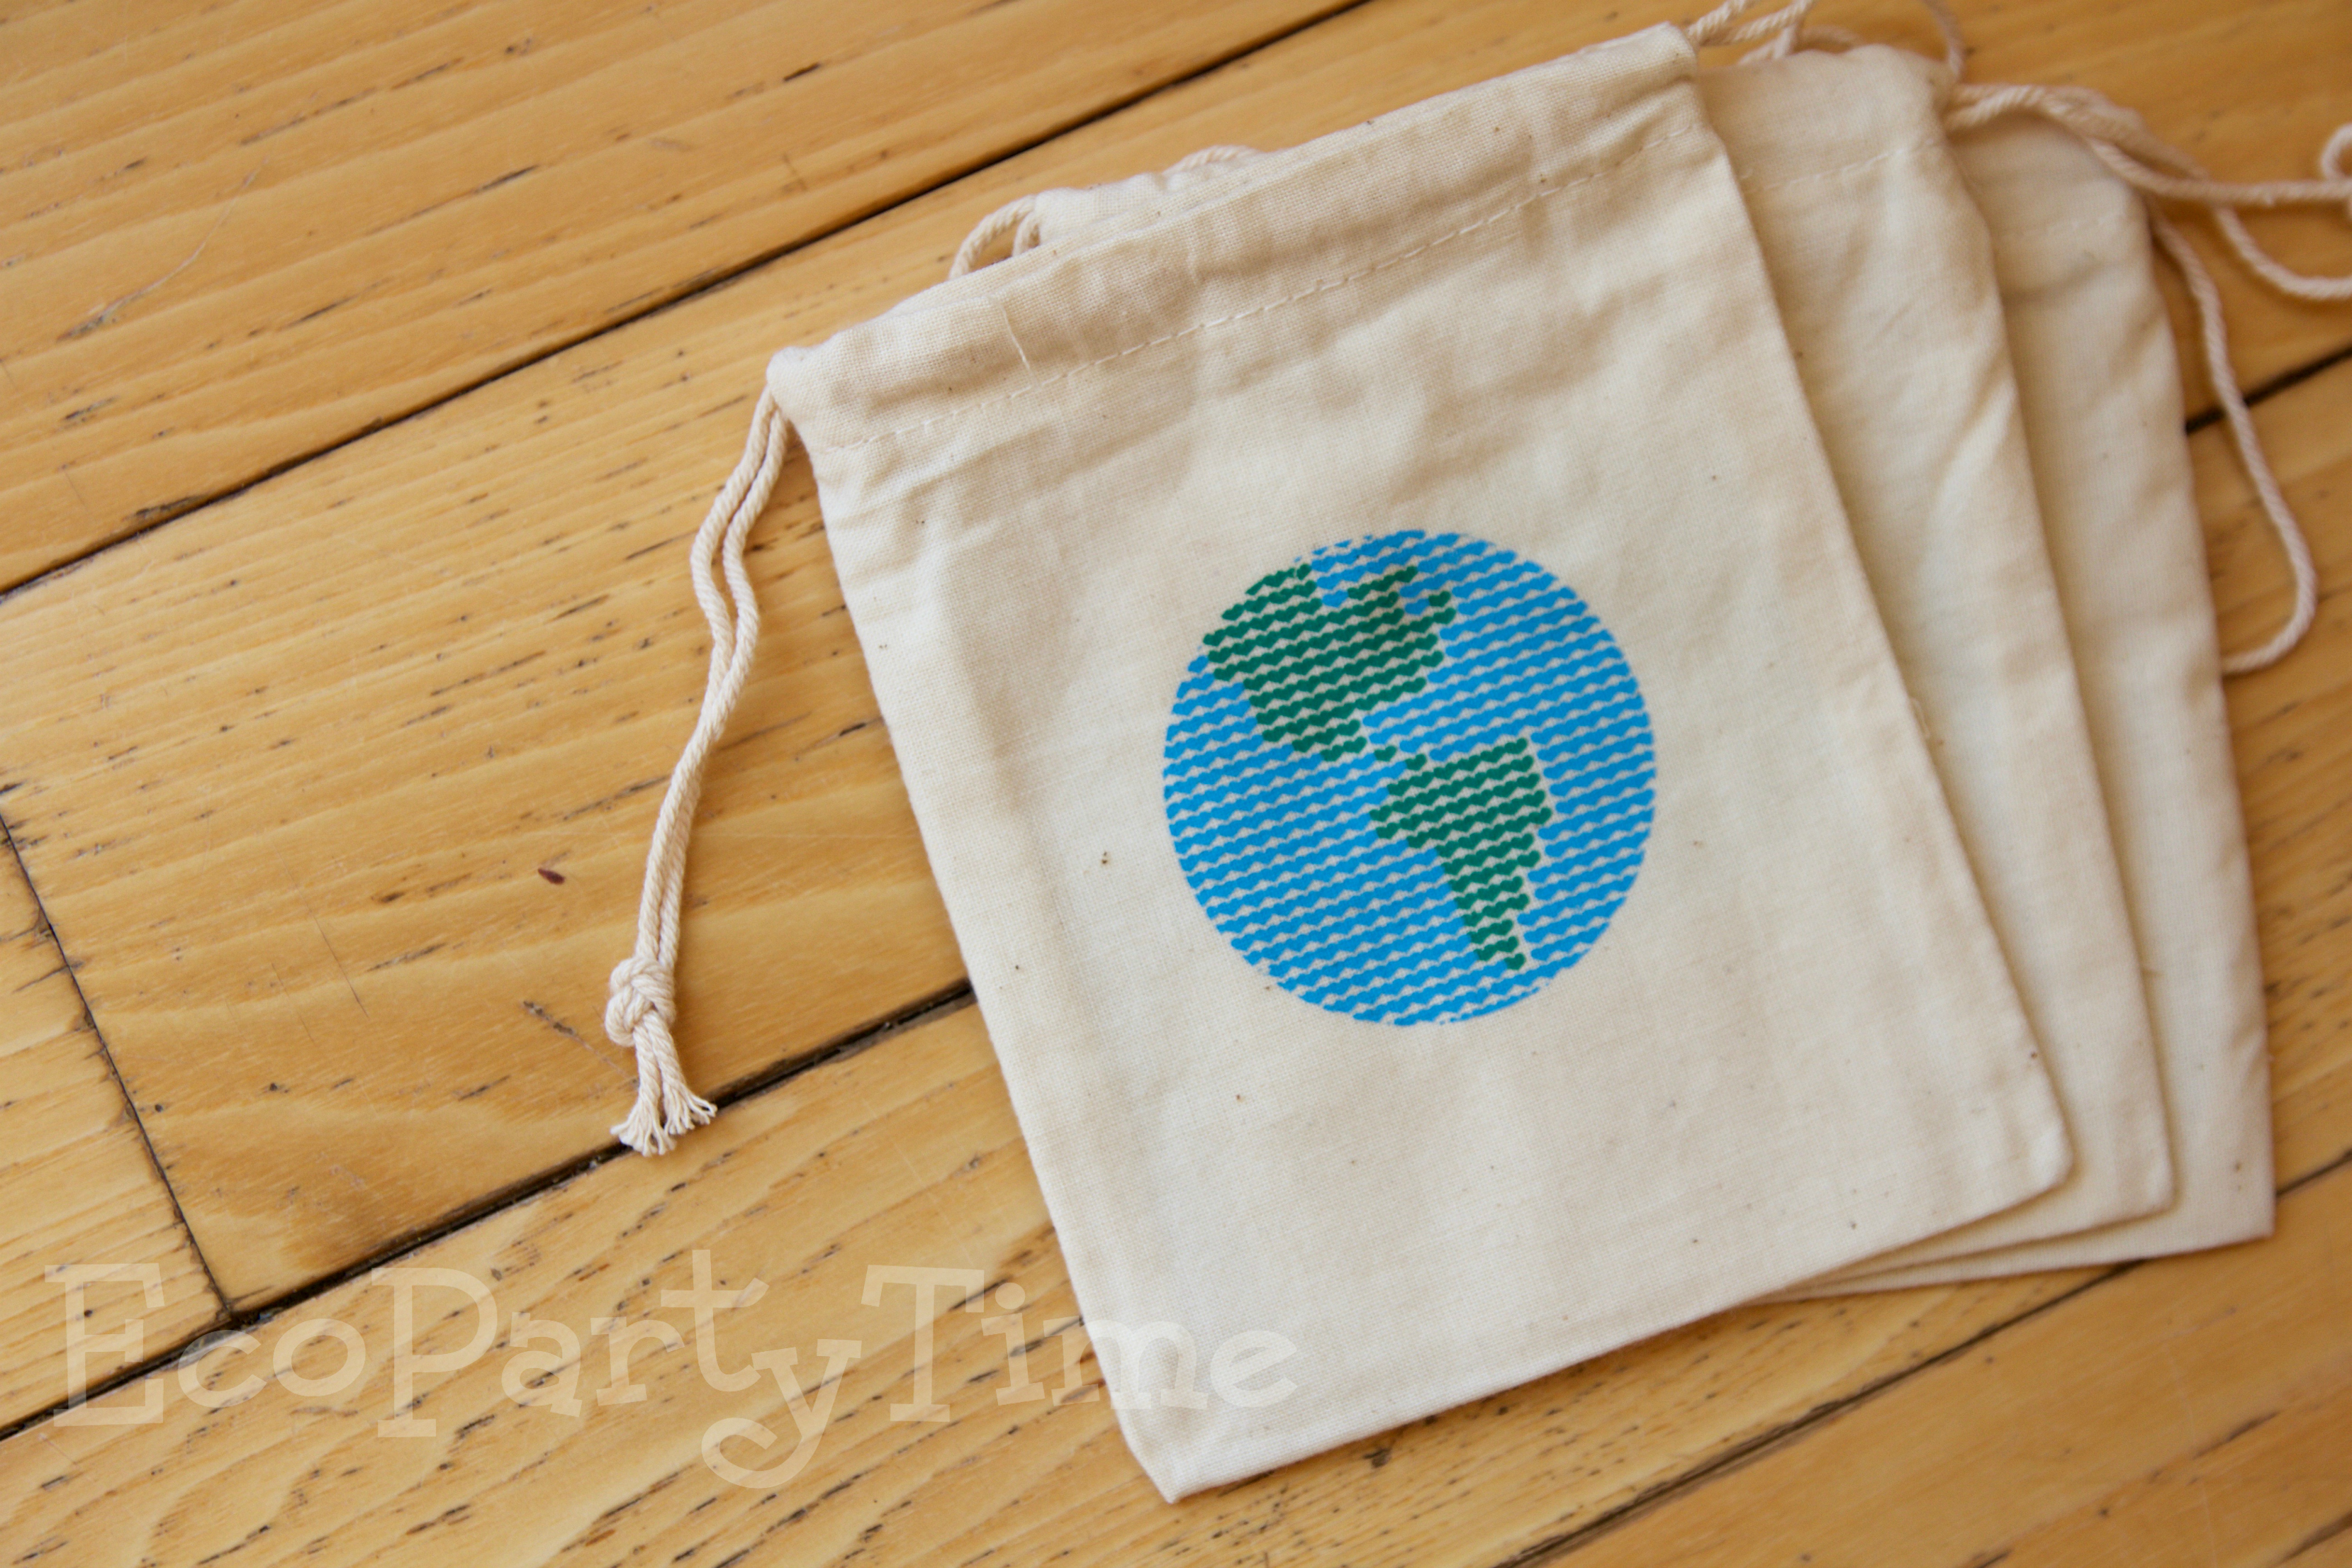 Ecopartytime: Fun Ways to Celebrate Earth Day